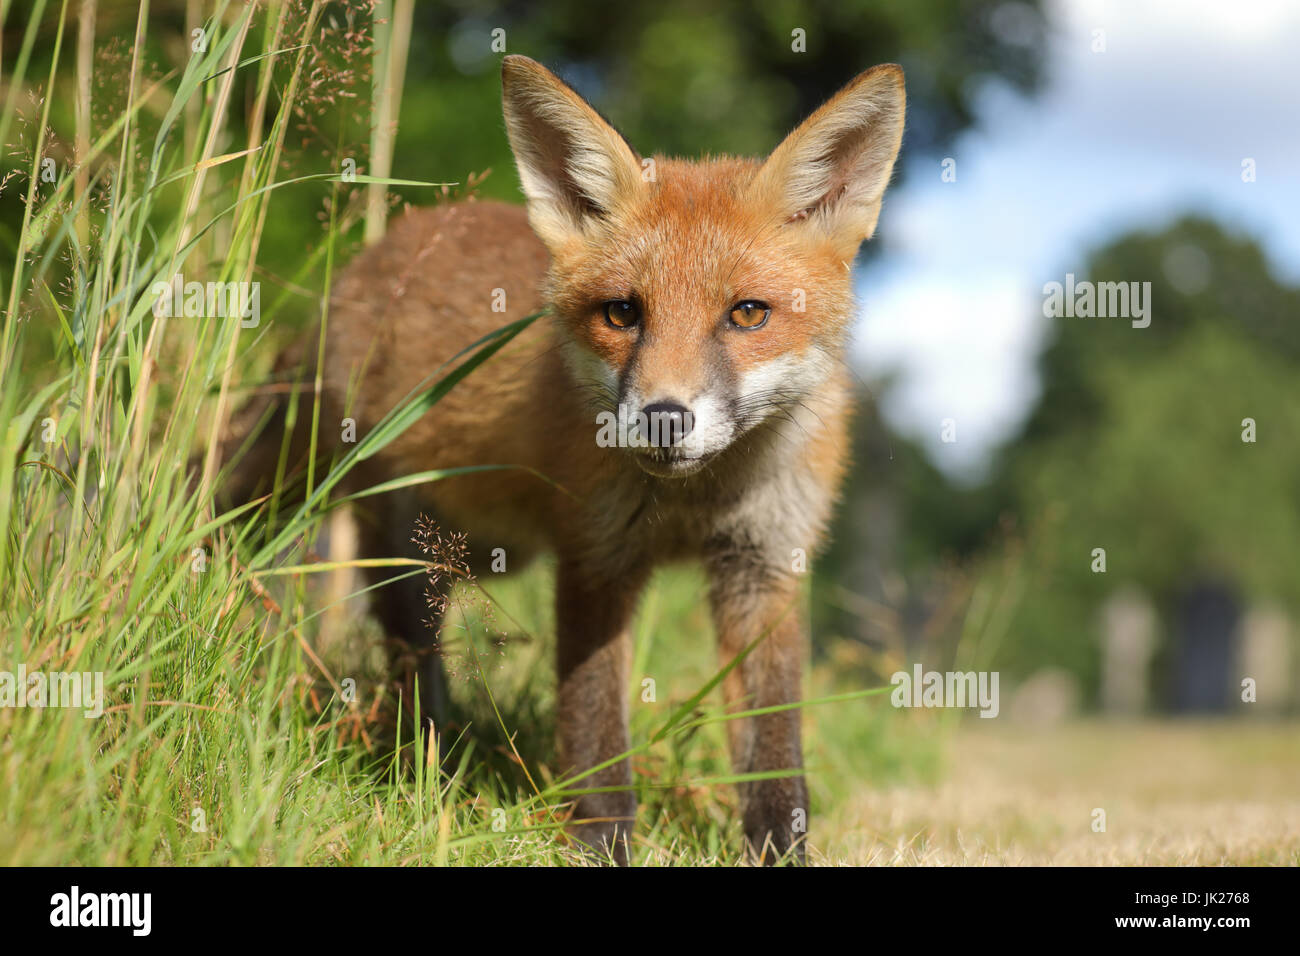 Fox cub close encounter - Stock Image